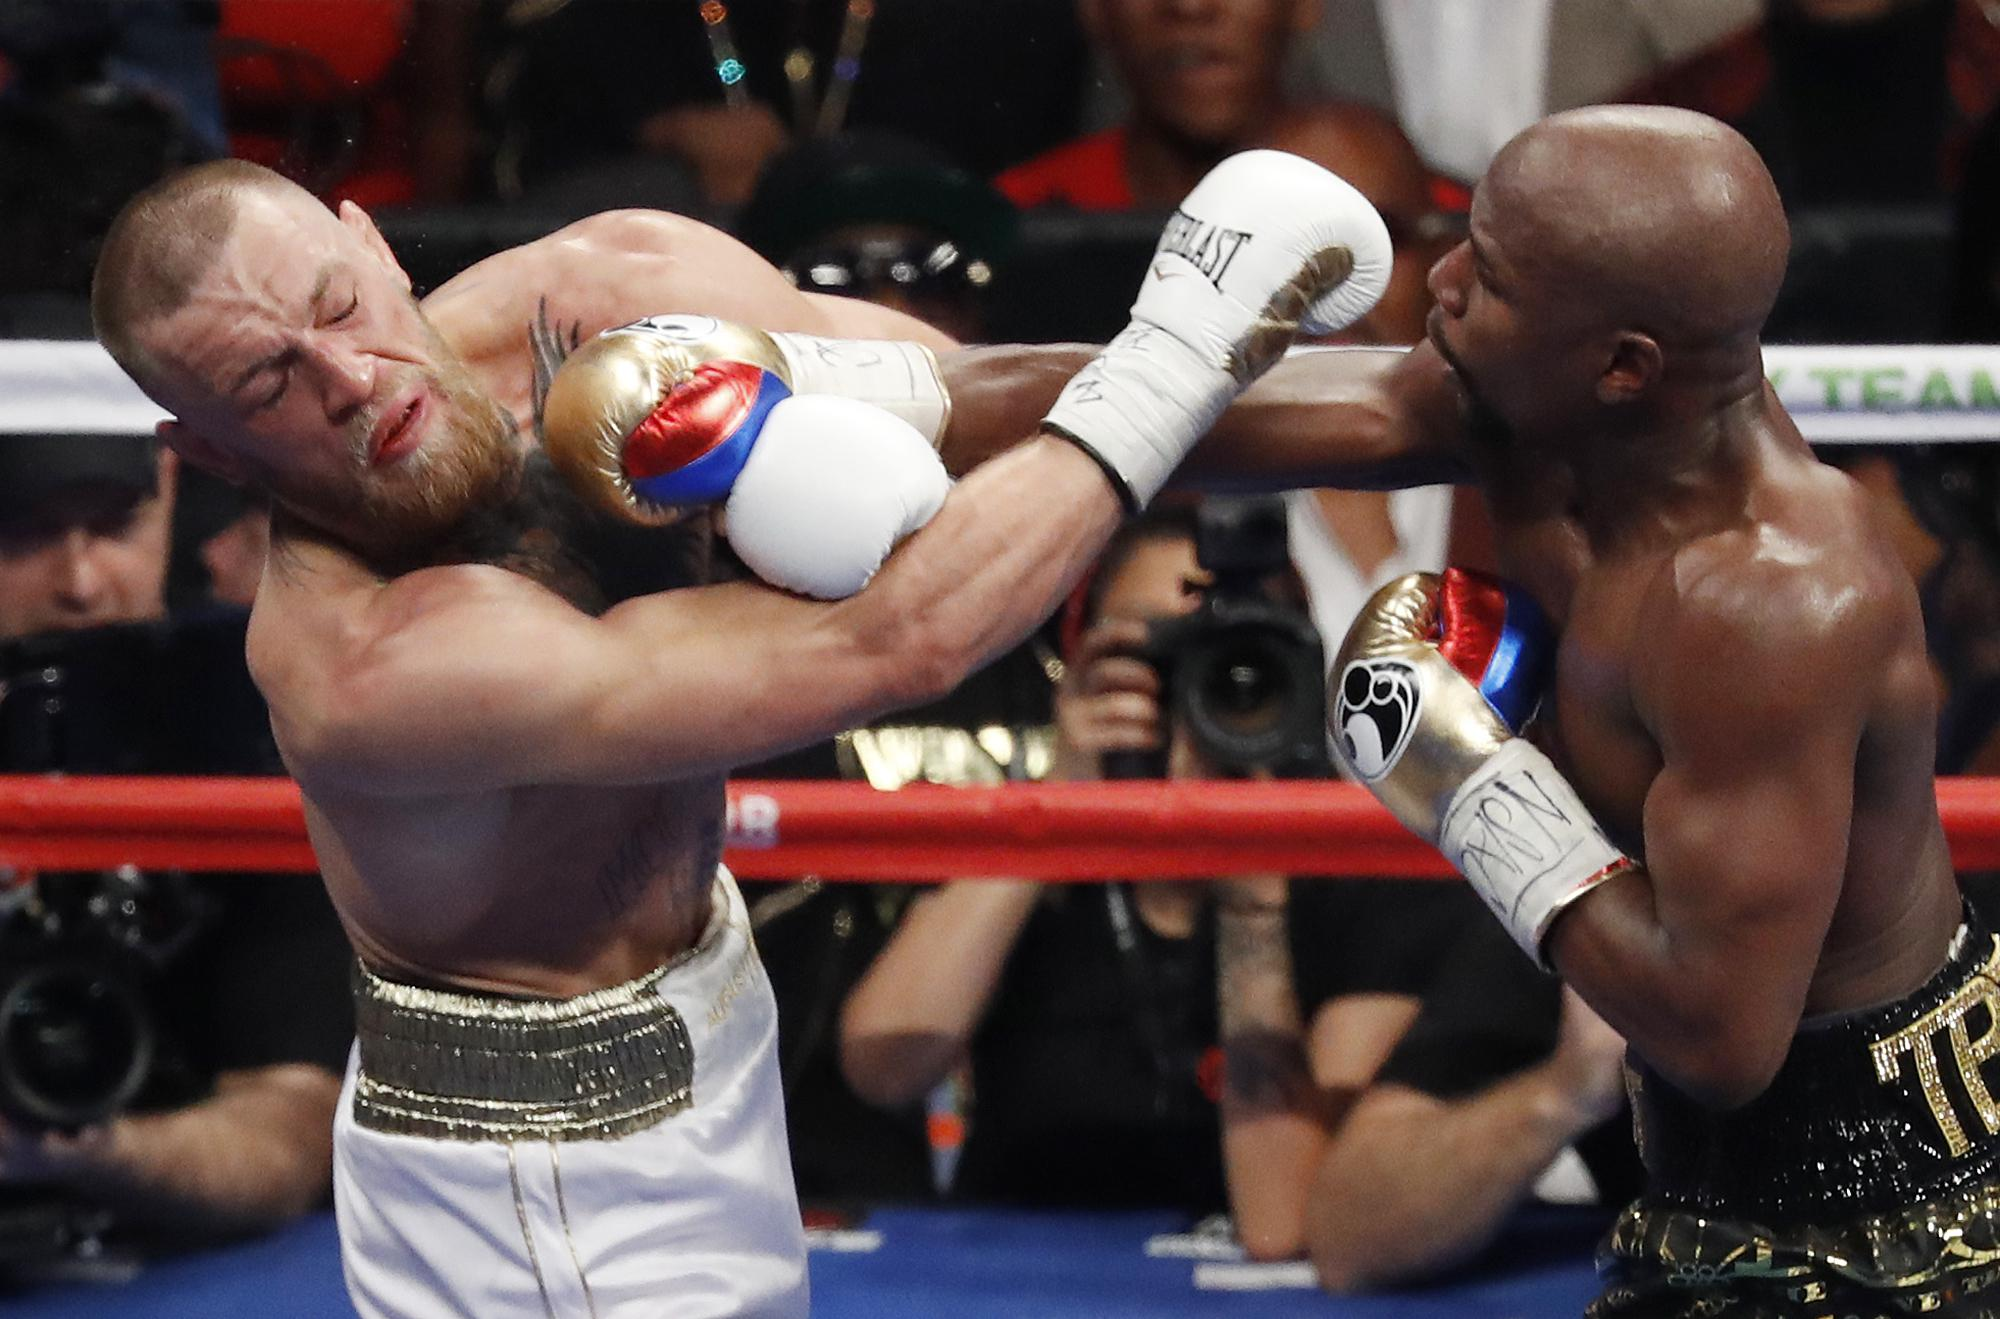 The pair could be set to clash again after last summer's boxing spectacle